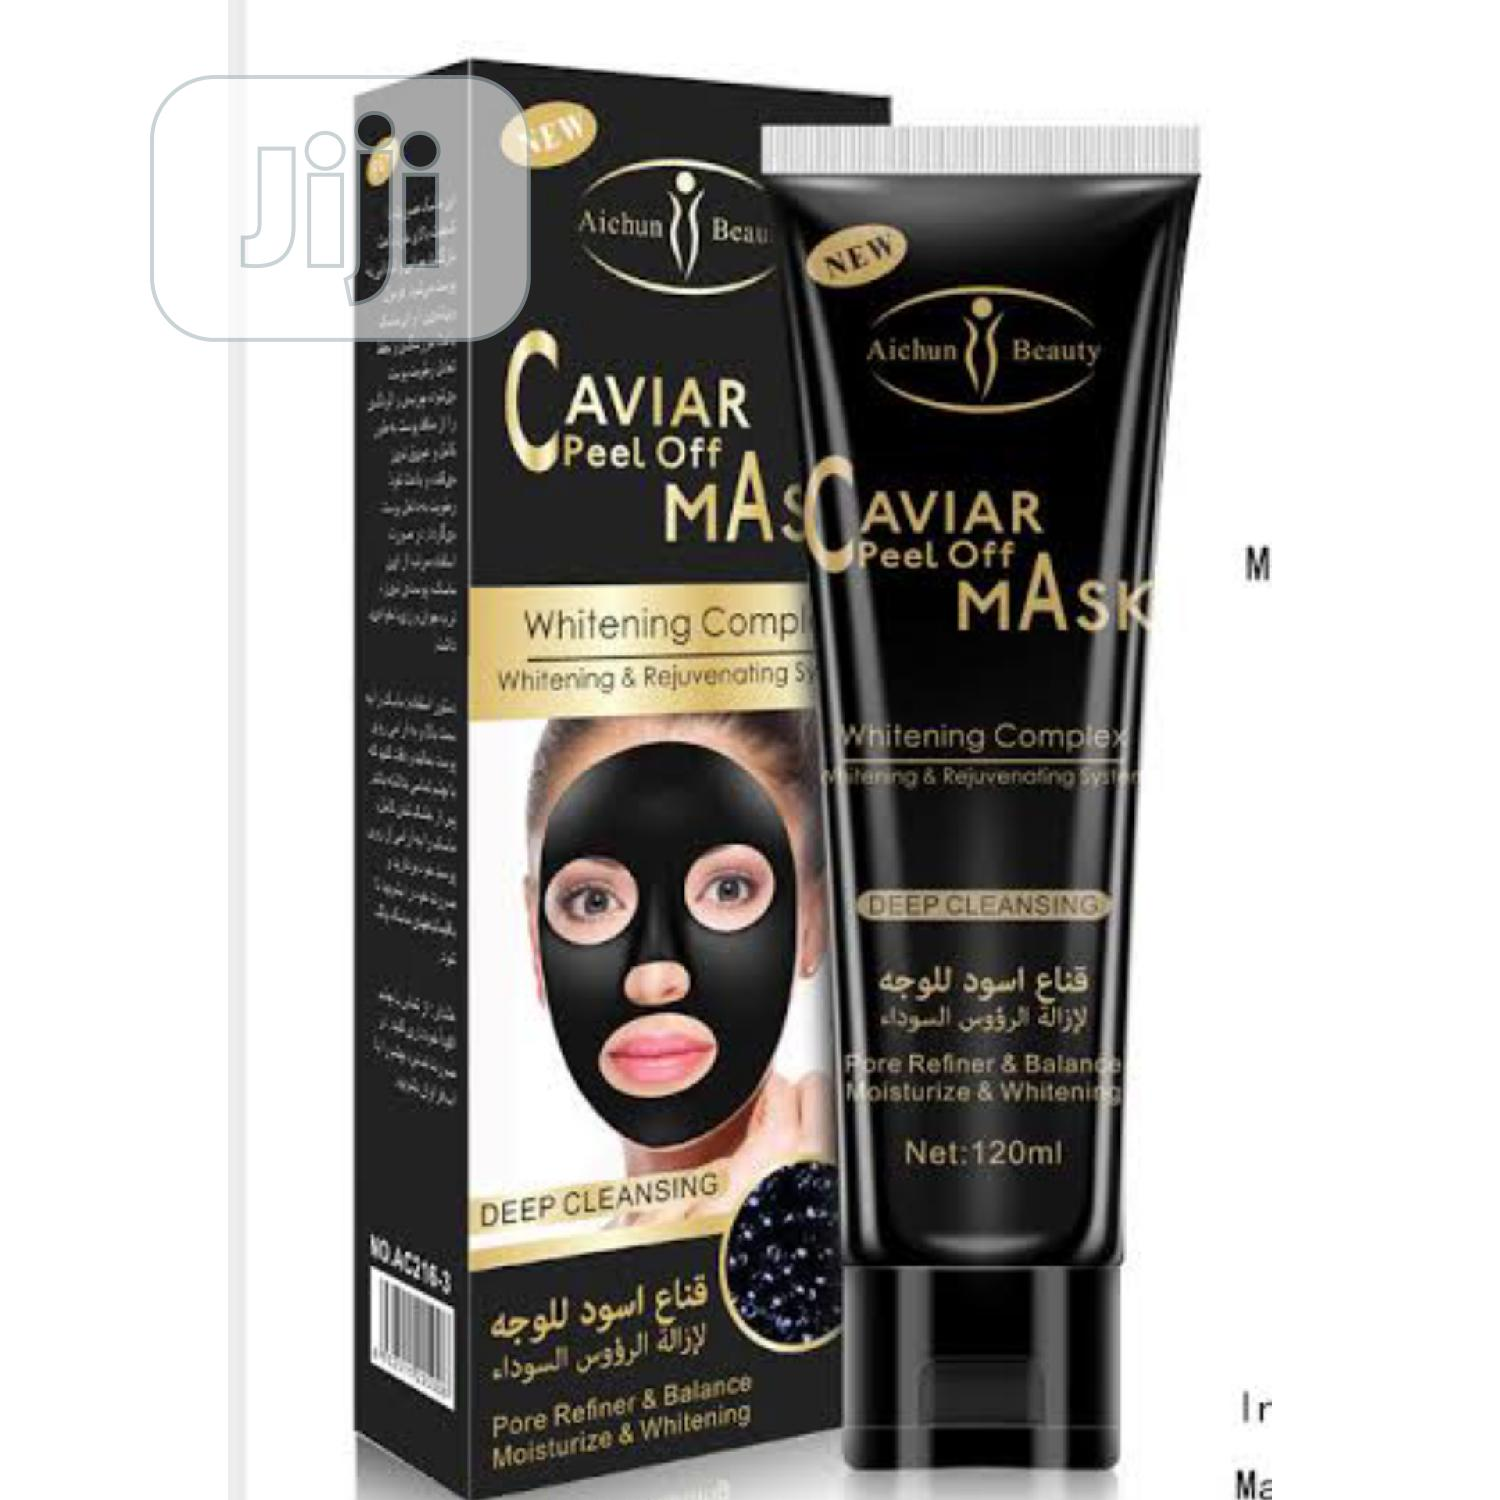 Archive: Caviar Peel Off Mask